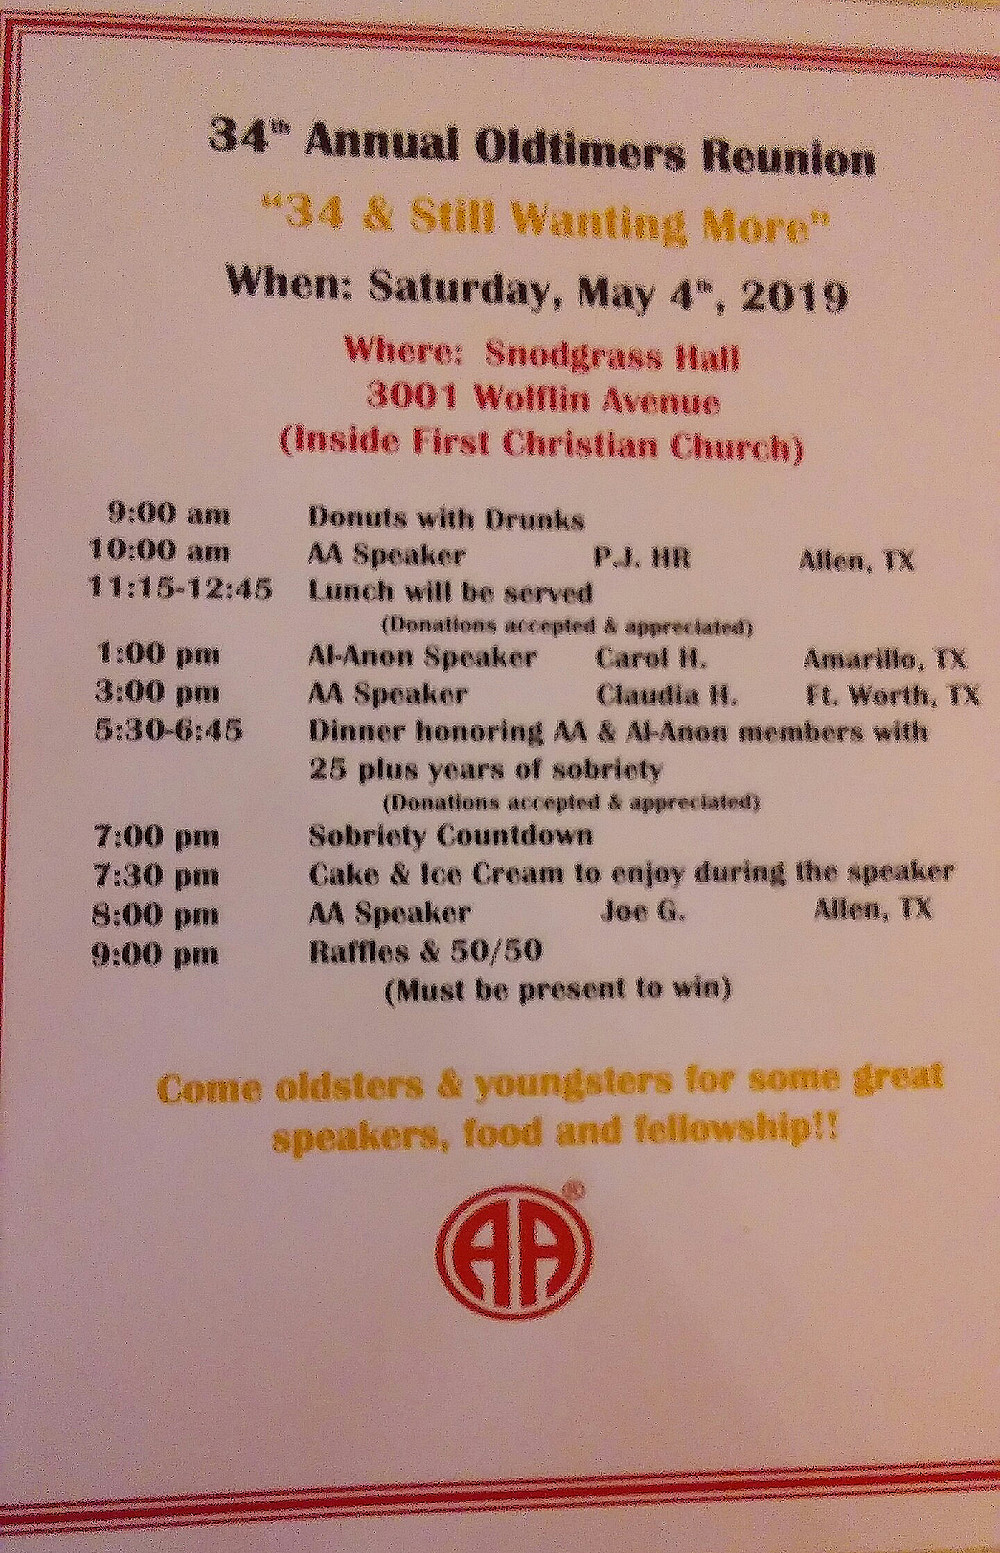 37th Annual Oldtimers Reunion schedule